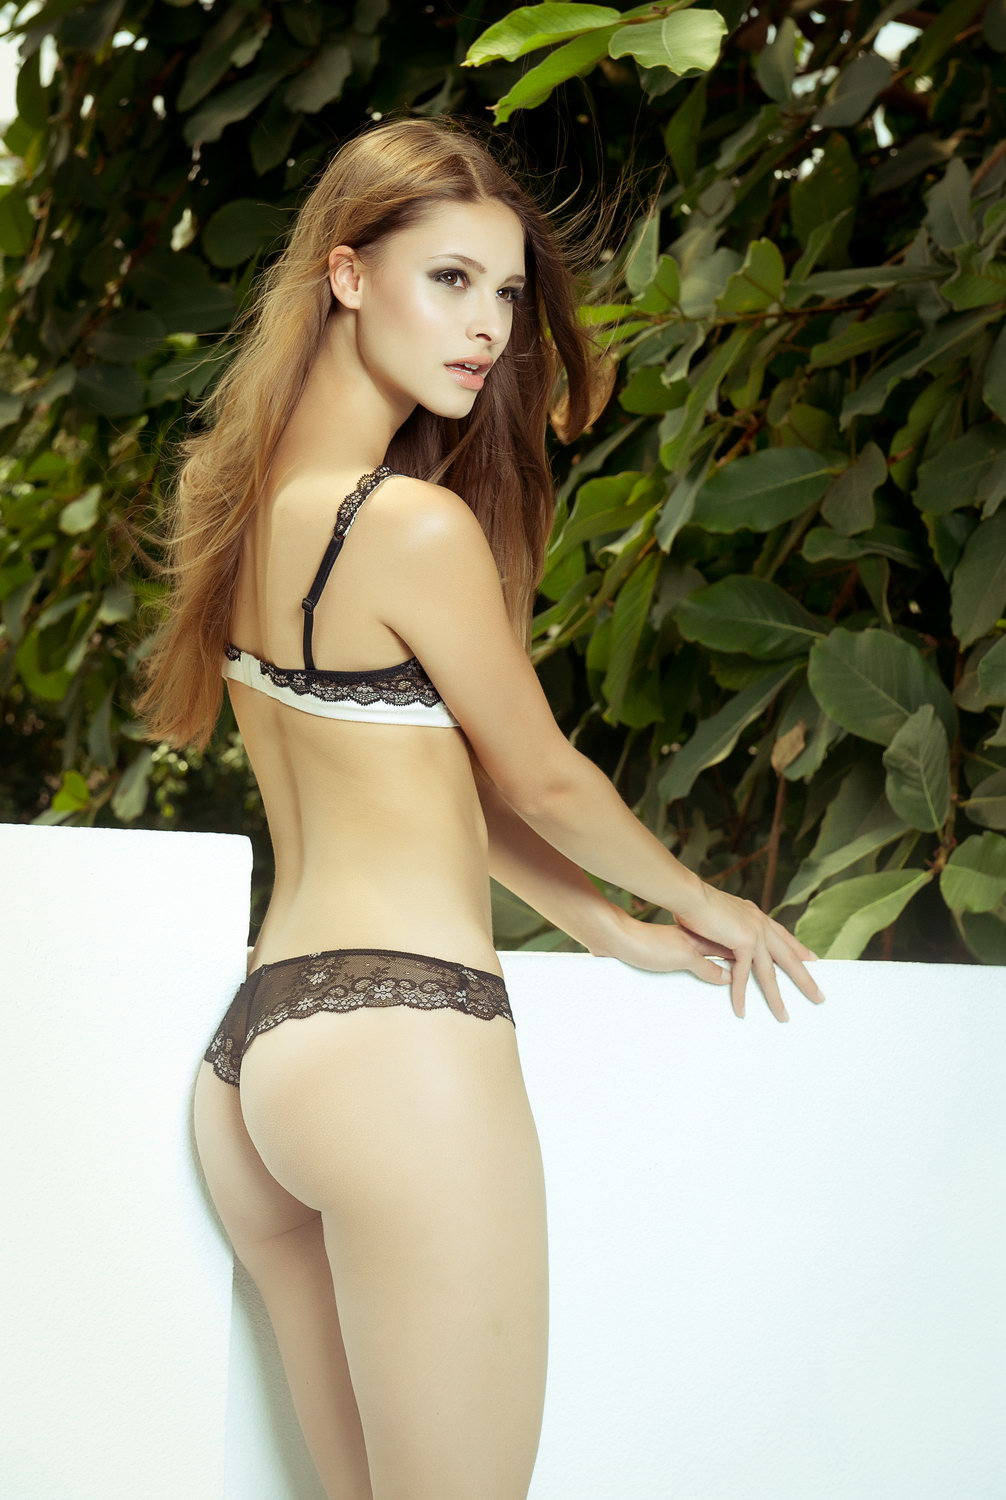 julia-furdea-by-manfred-baumann-04-fhm-shooting_bikini_young_hot_ass